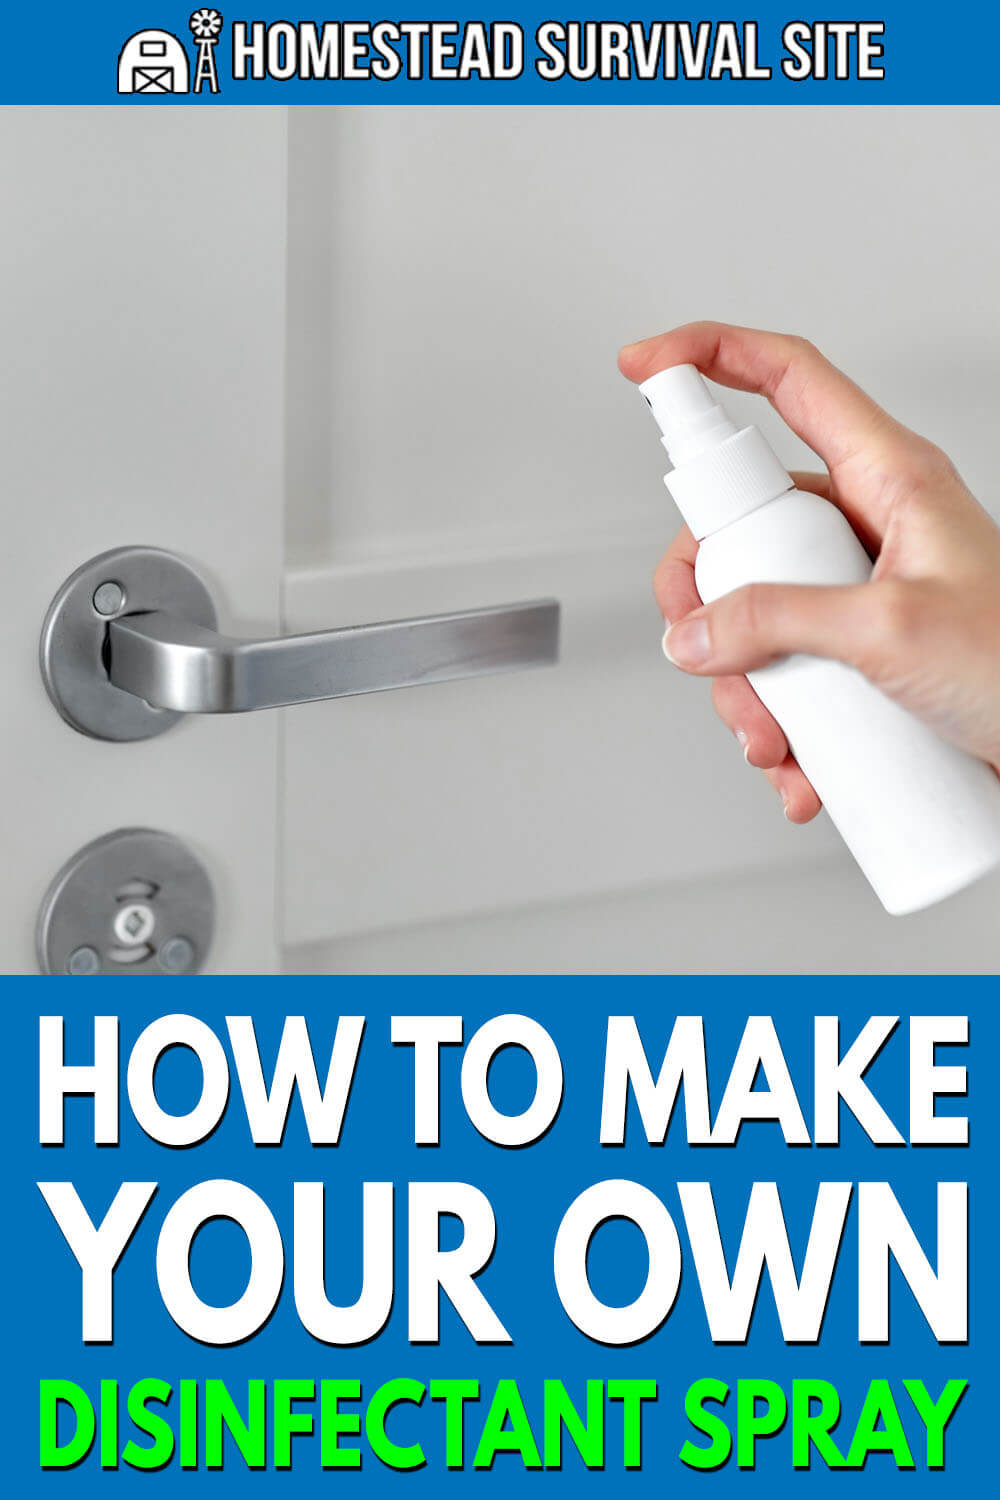 How To Make Your Own Disinfectant Spray